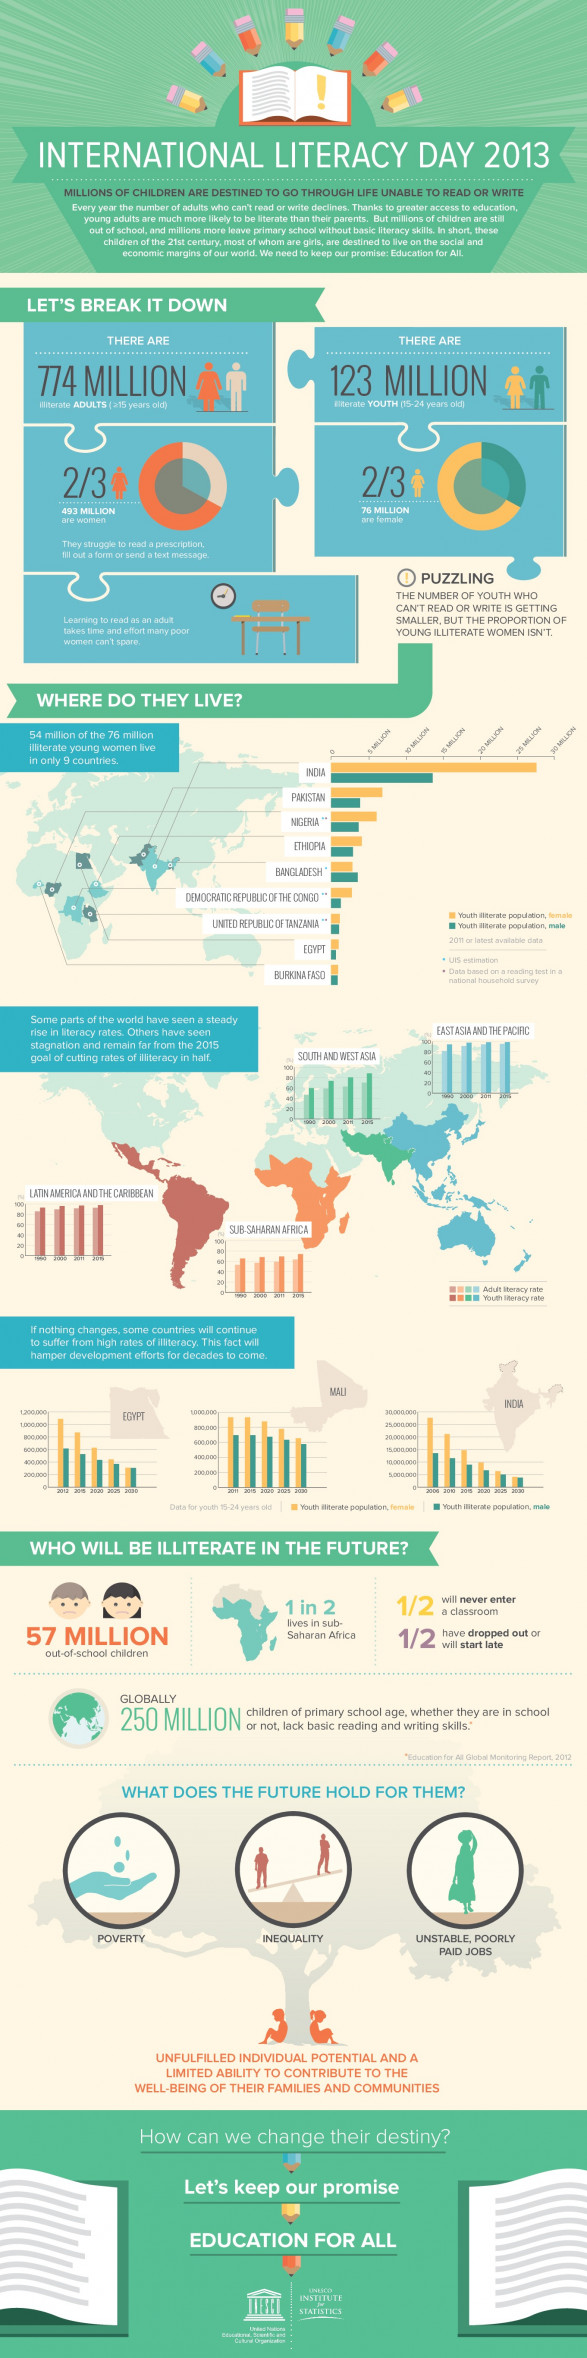 International Literacy Data